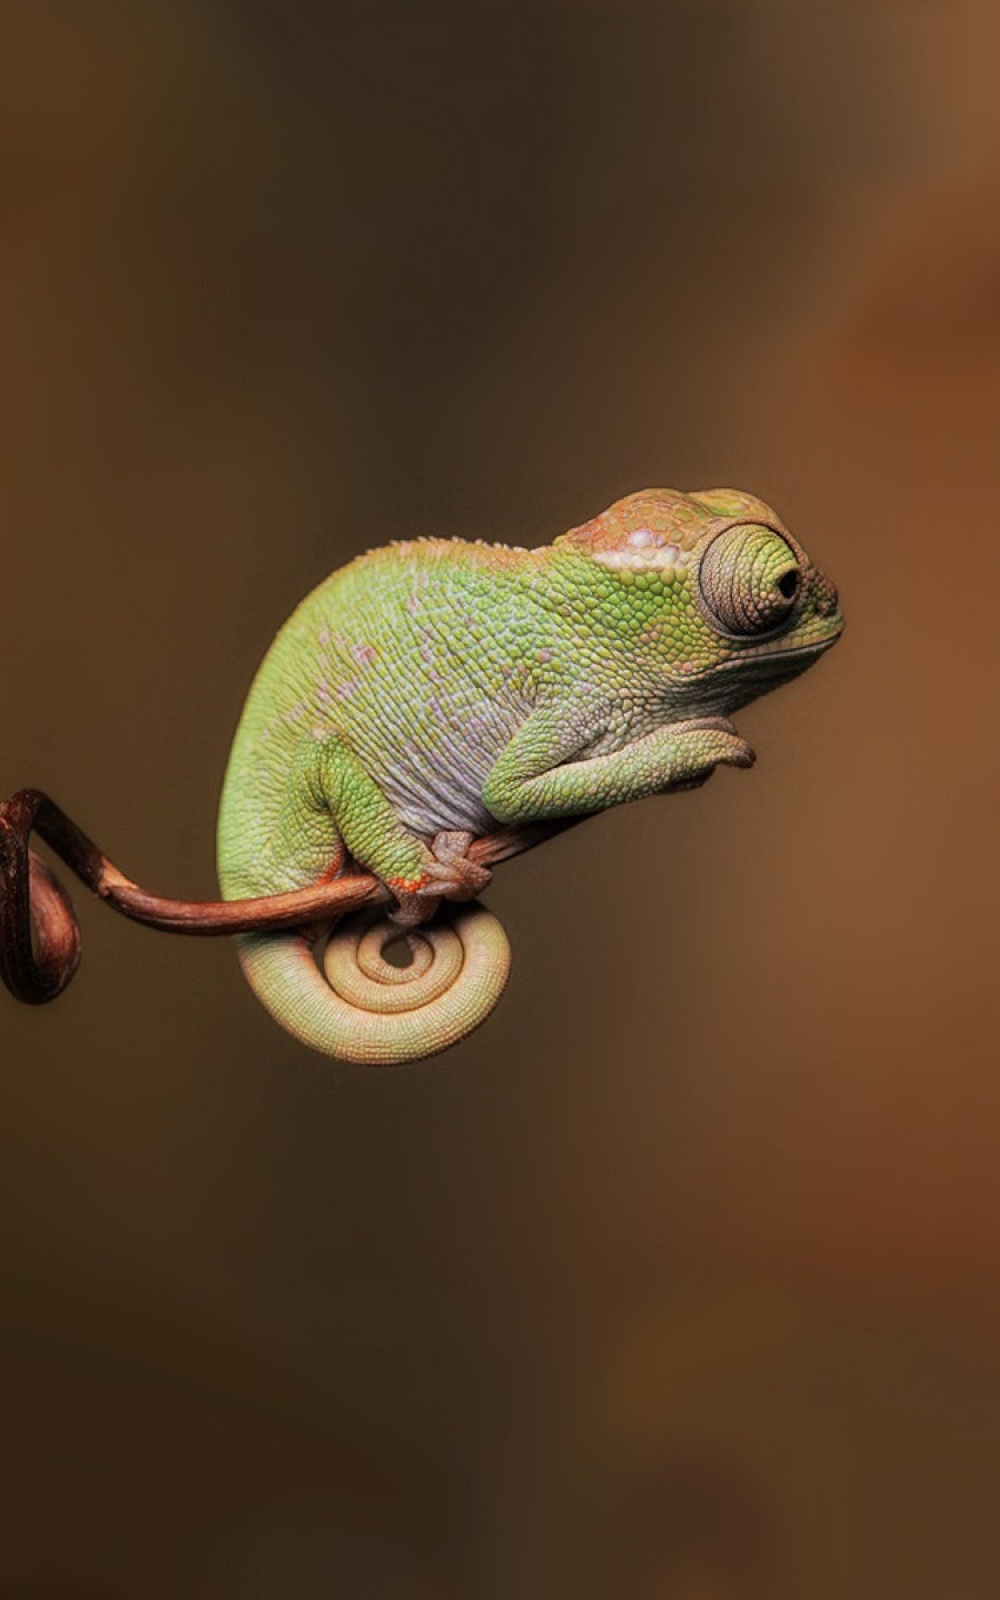 chameleon wildlife reptile animal nature portrait lizard side view one color tree